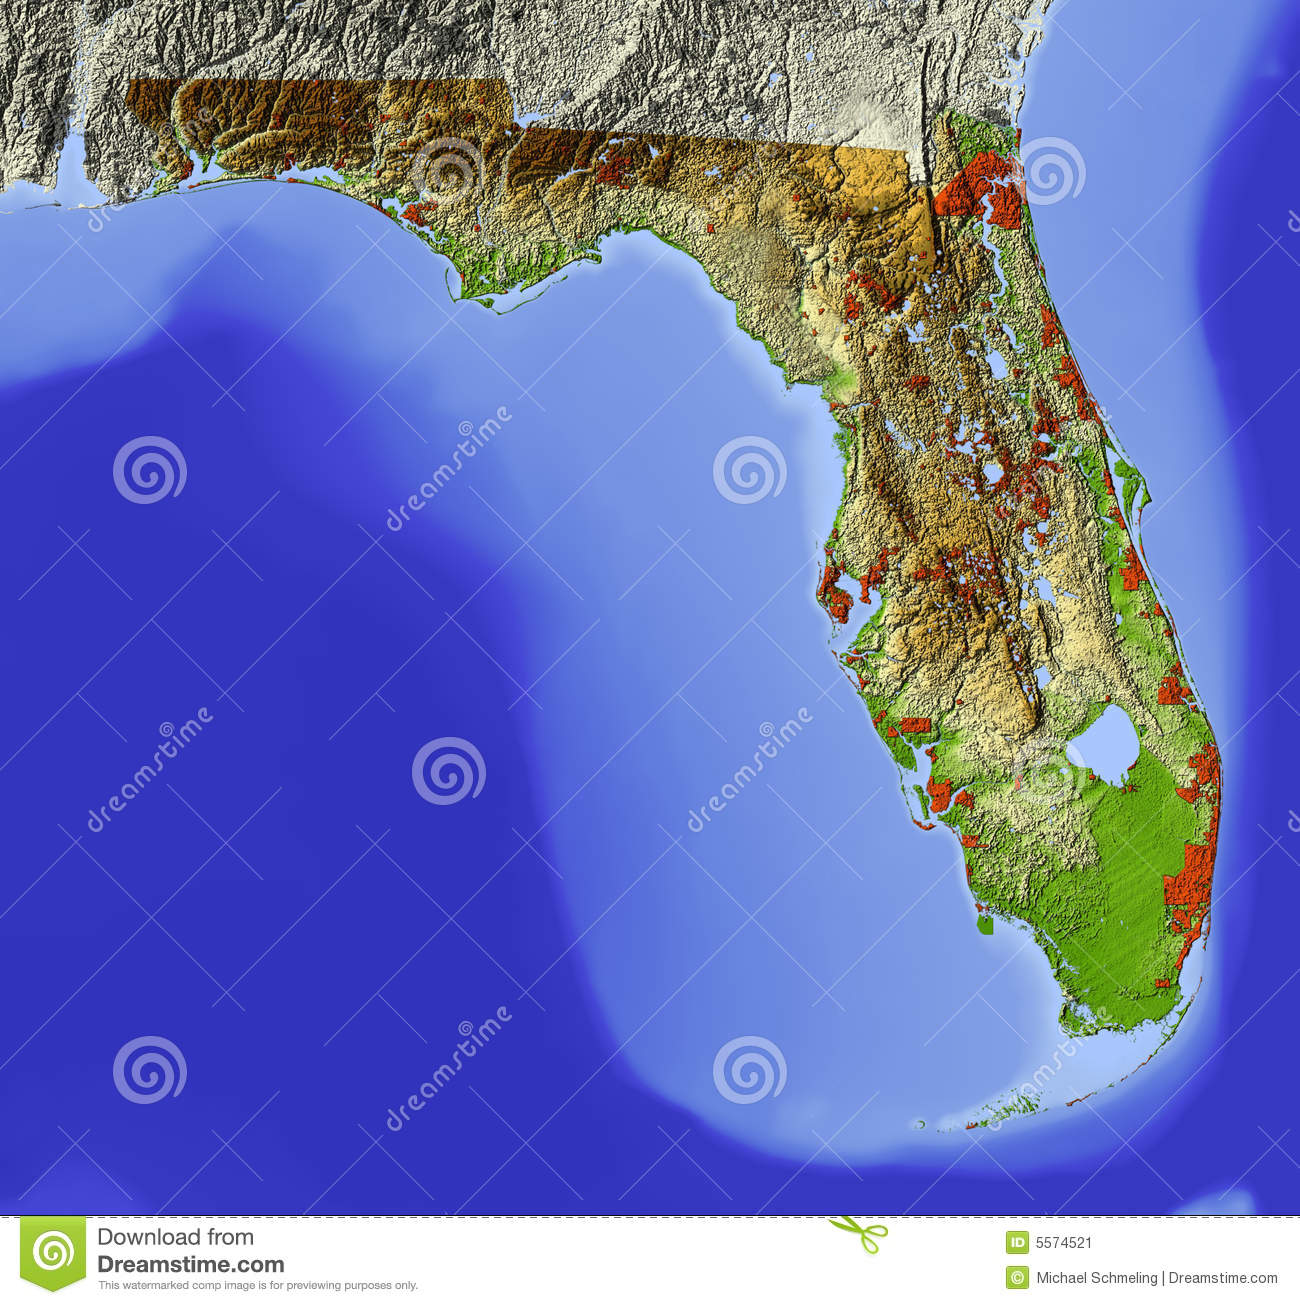 Florida Shaded Relief Map Stock Illustration Image Of Continent - Florida elevation map